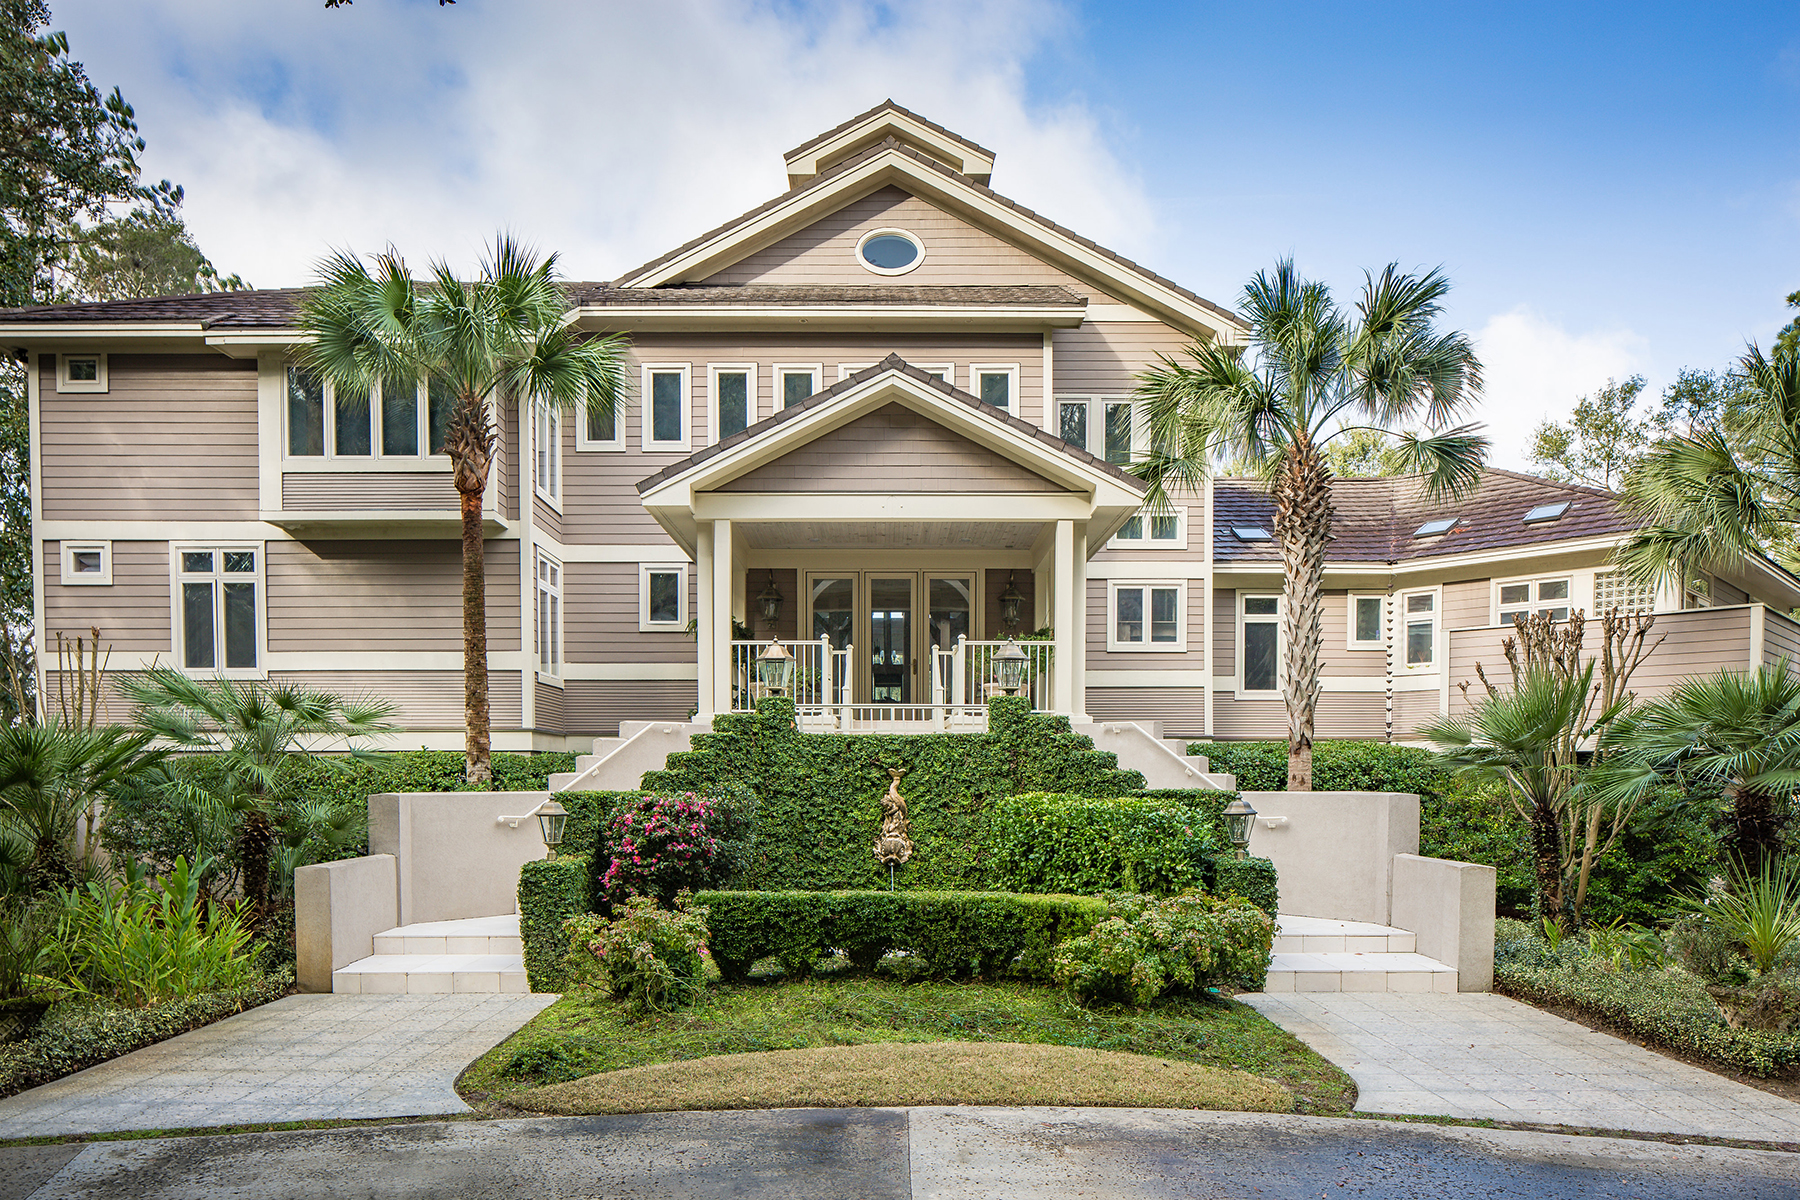 Casa Unifamiliar por un Venta en Secluded Waterfront Estate 3906 Betsy Kerrison Pkwy. Johns Island, Carolina Del Sur, 29455 Estados Unidos